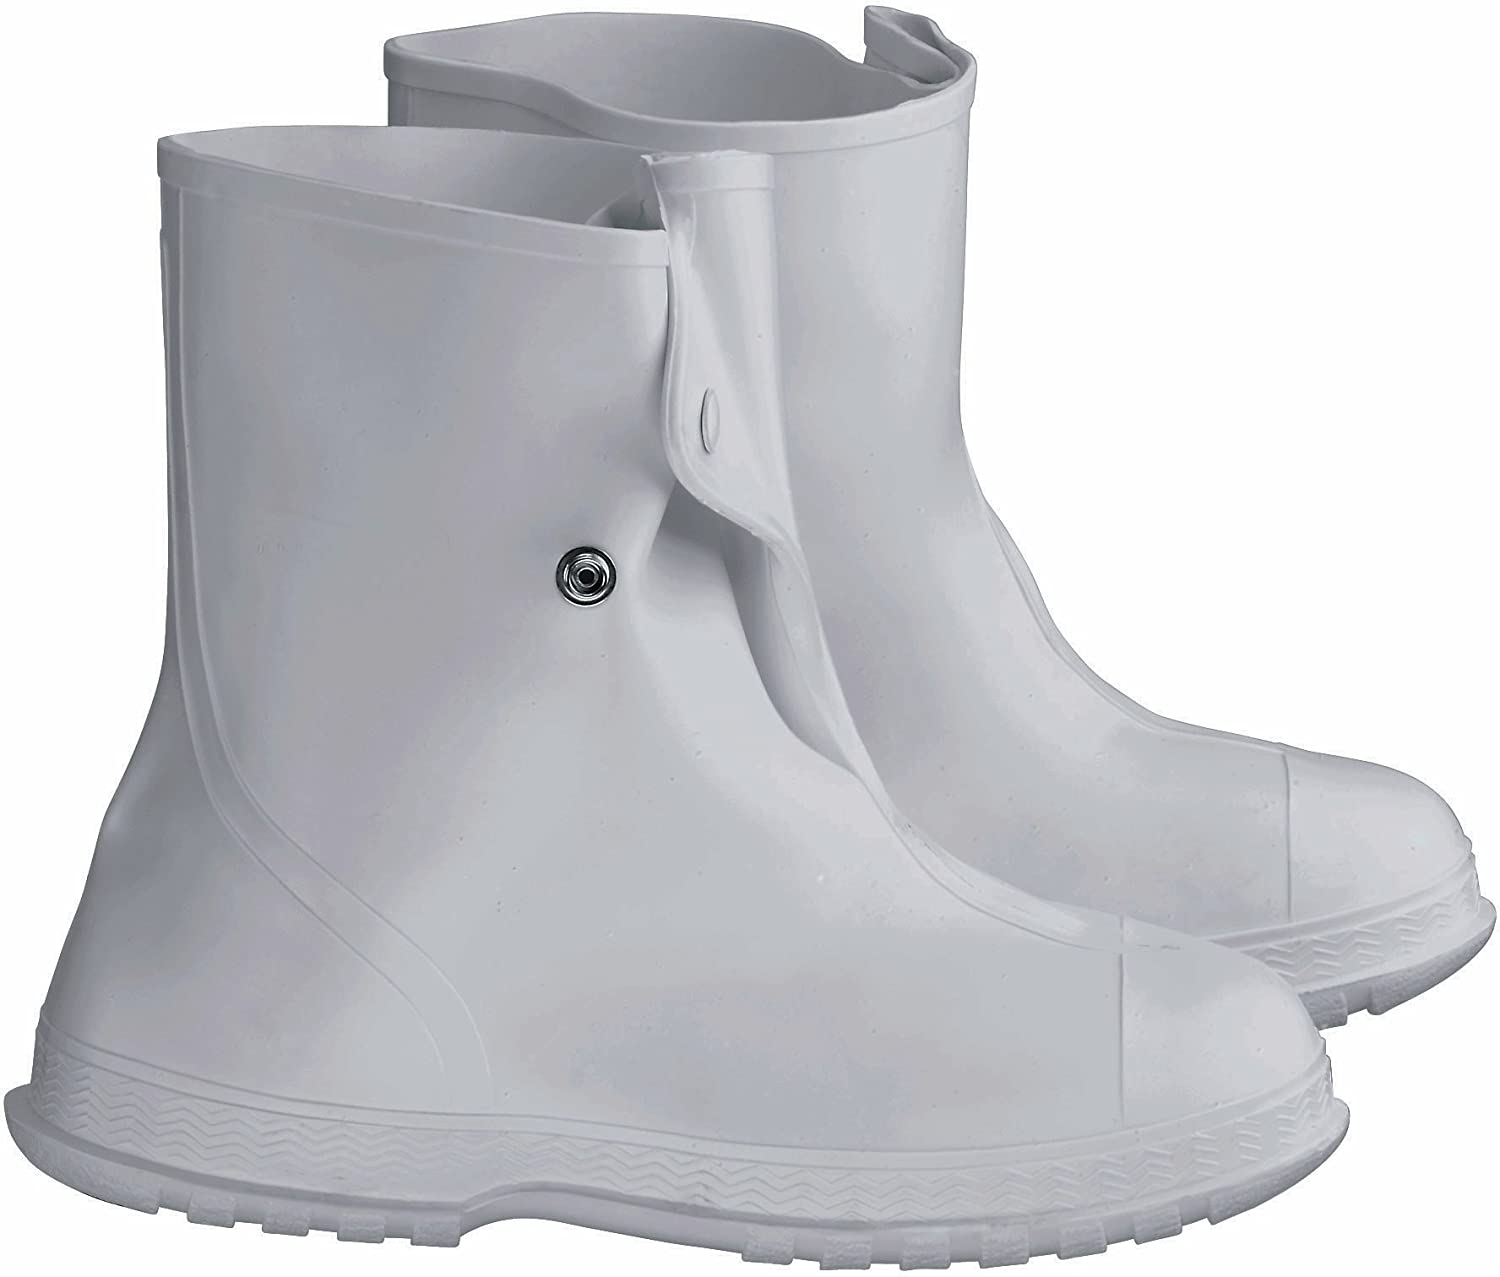 ONGUARD 81020 PVC Men's Overshoe with 4 Way Cleated Outsole, 10